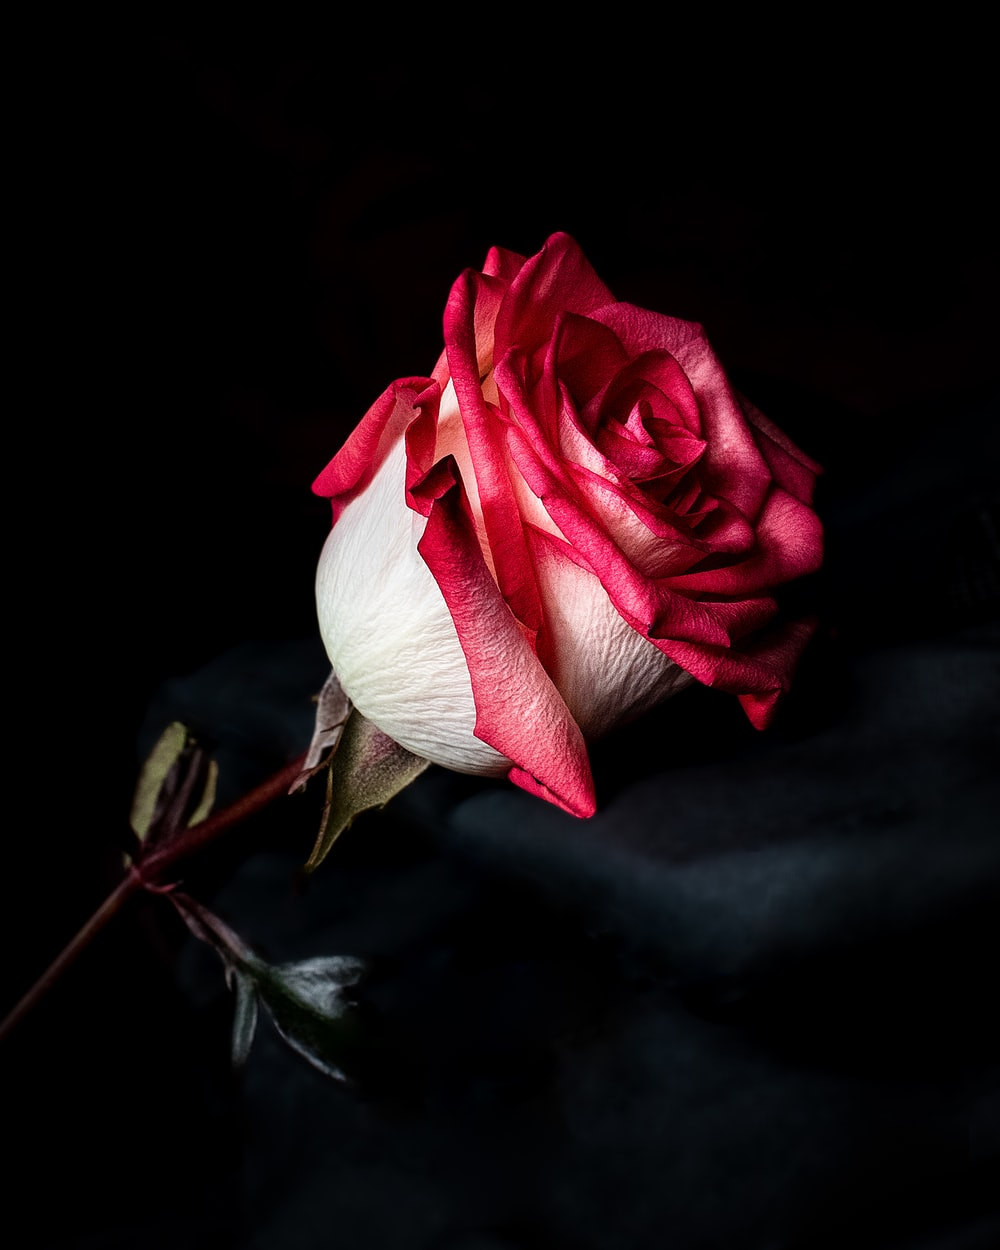 focus photography of red and white rose flower